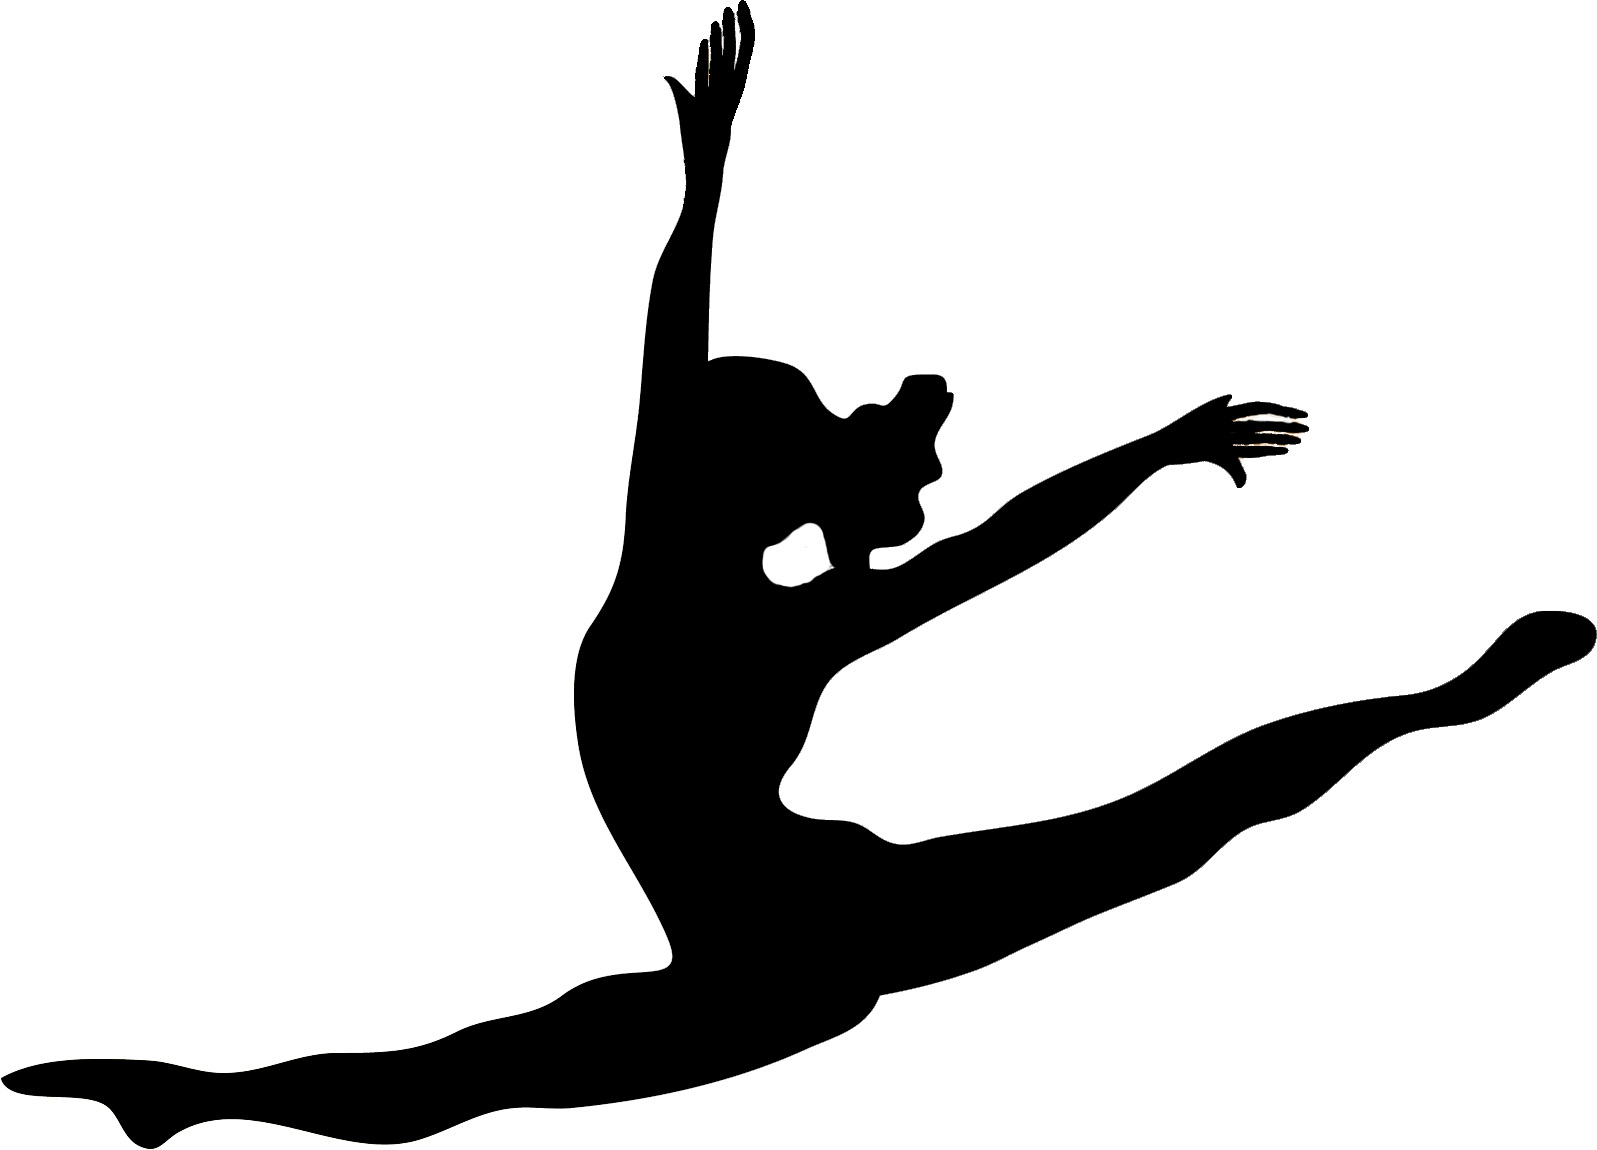 Gymnastics silhouette at getdrawings. Dance clipart shadow